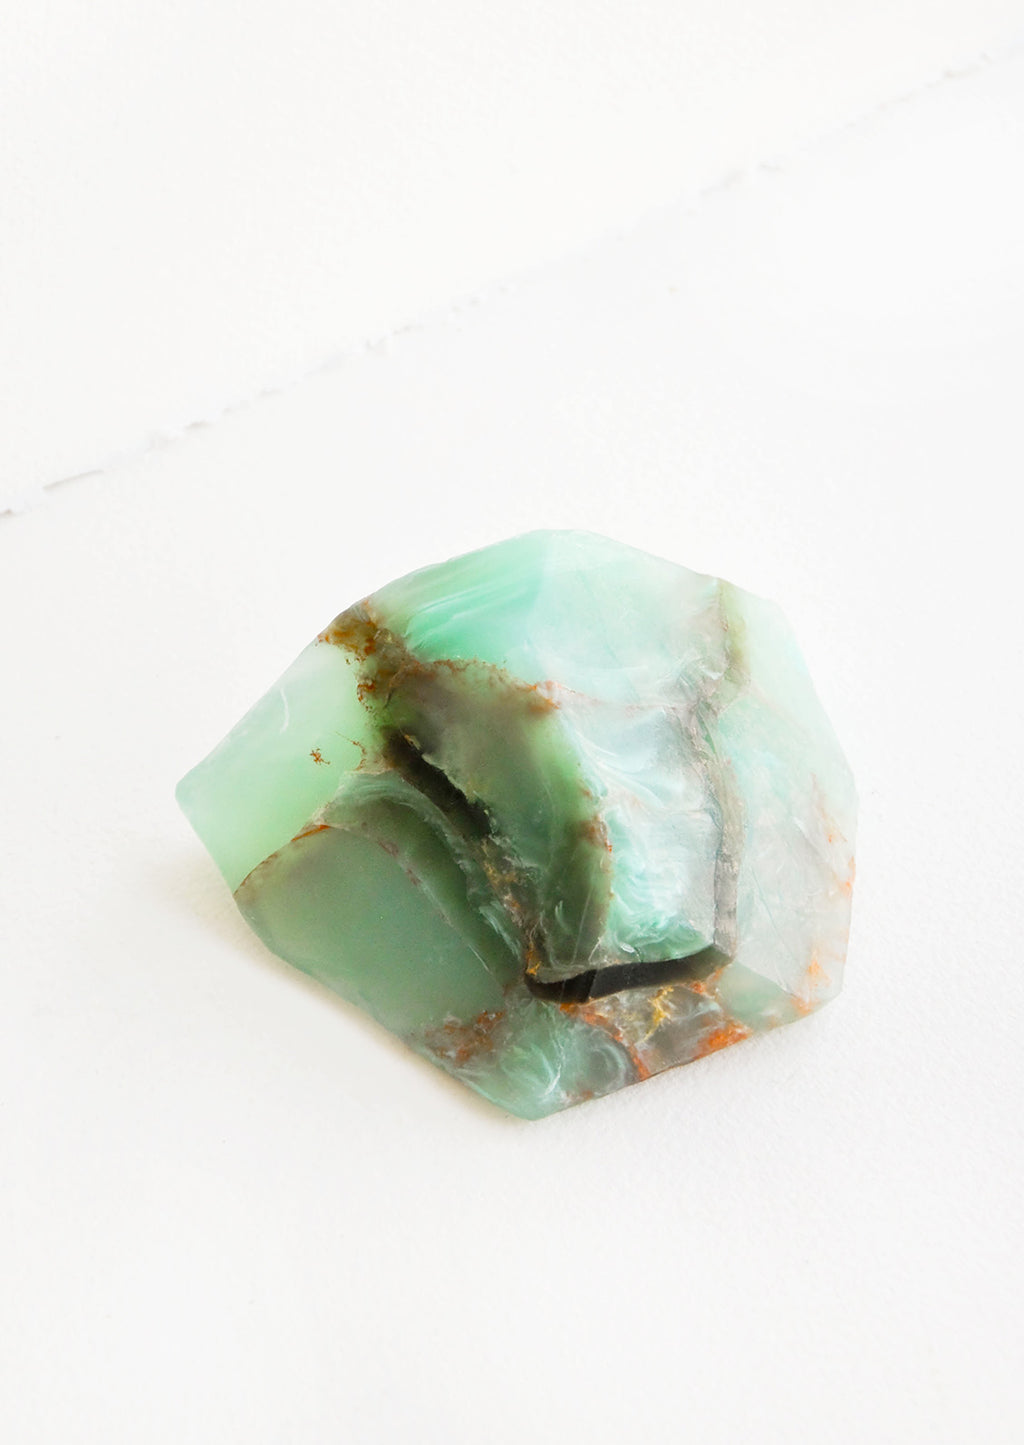 Jade: Bar soap in the form of a realistic looking jade gemstone